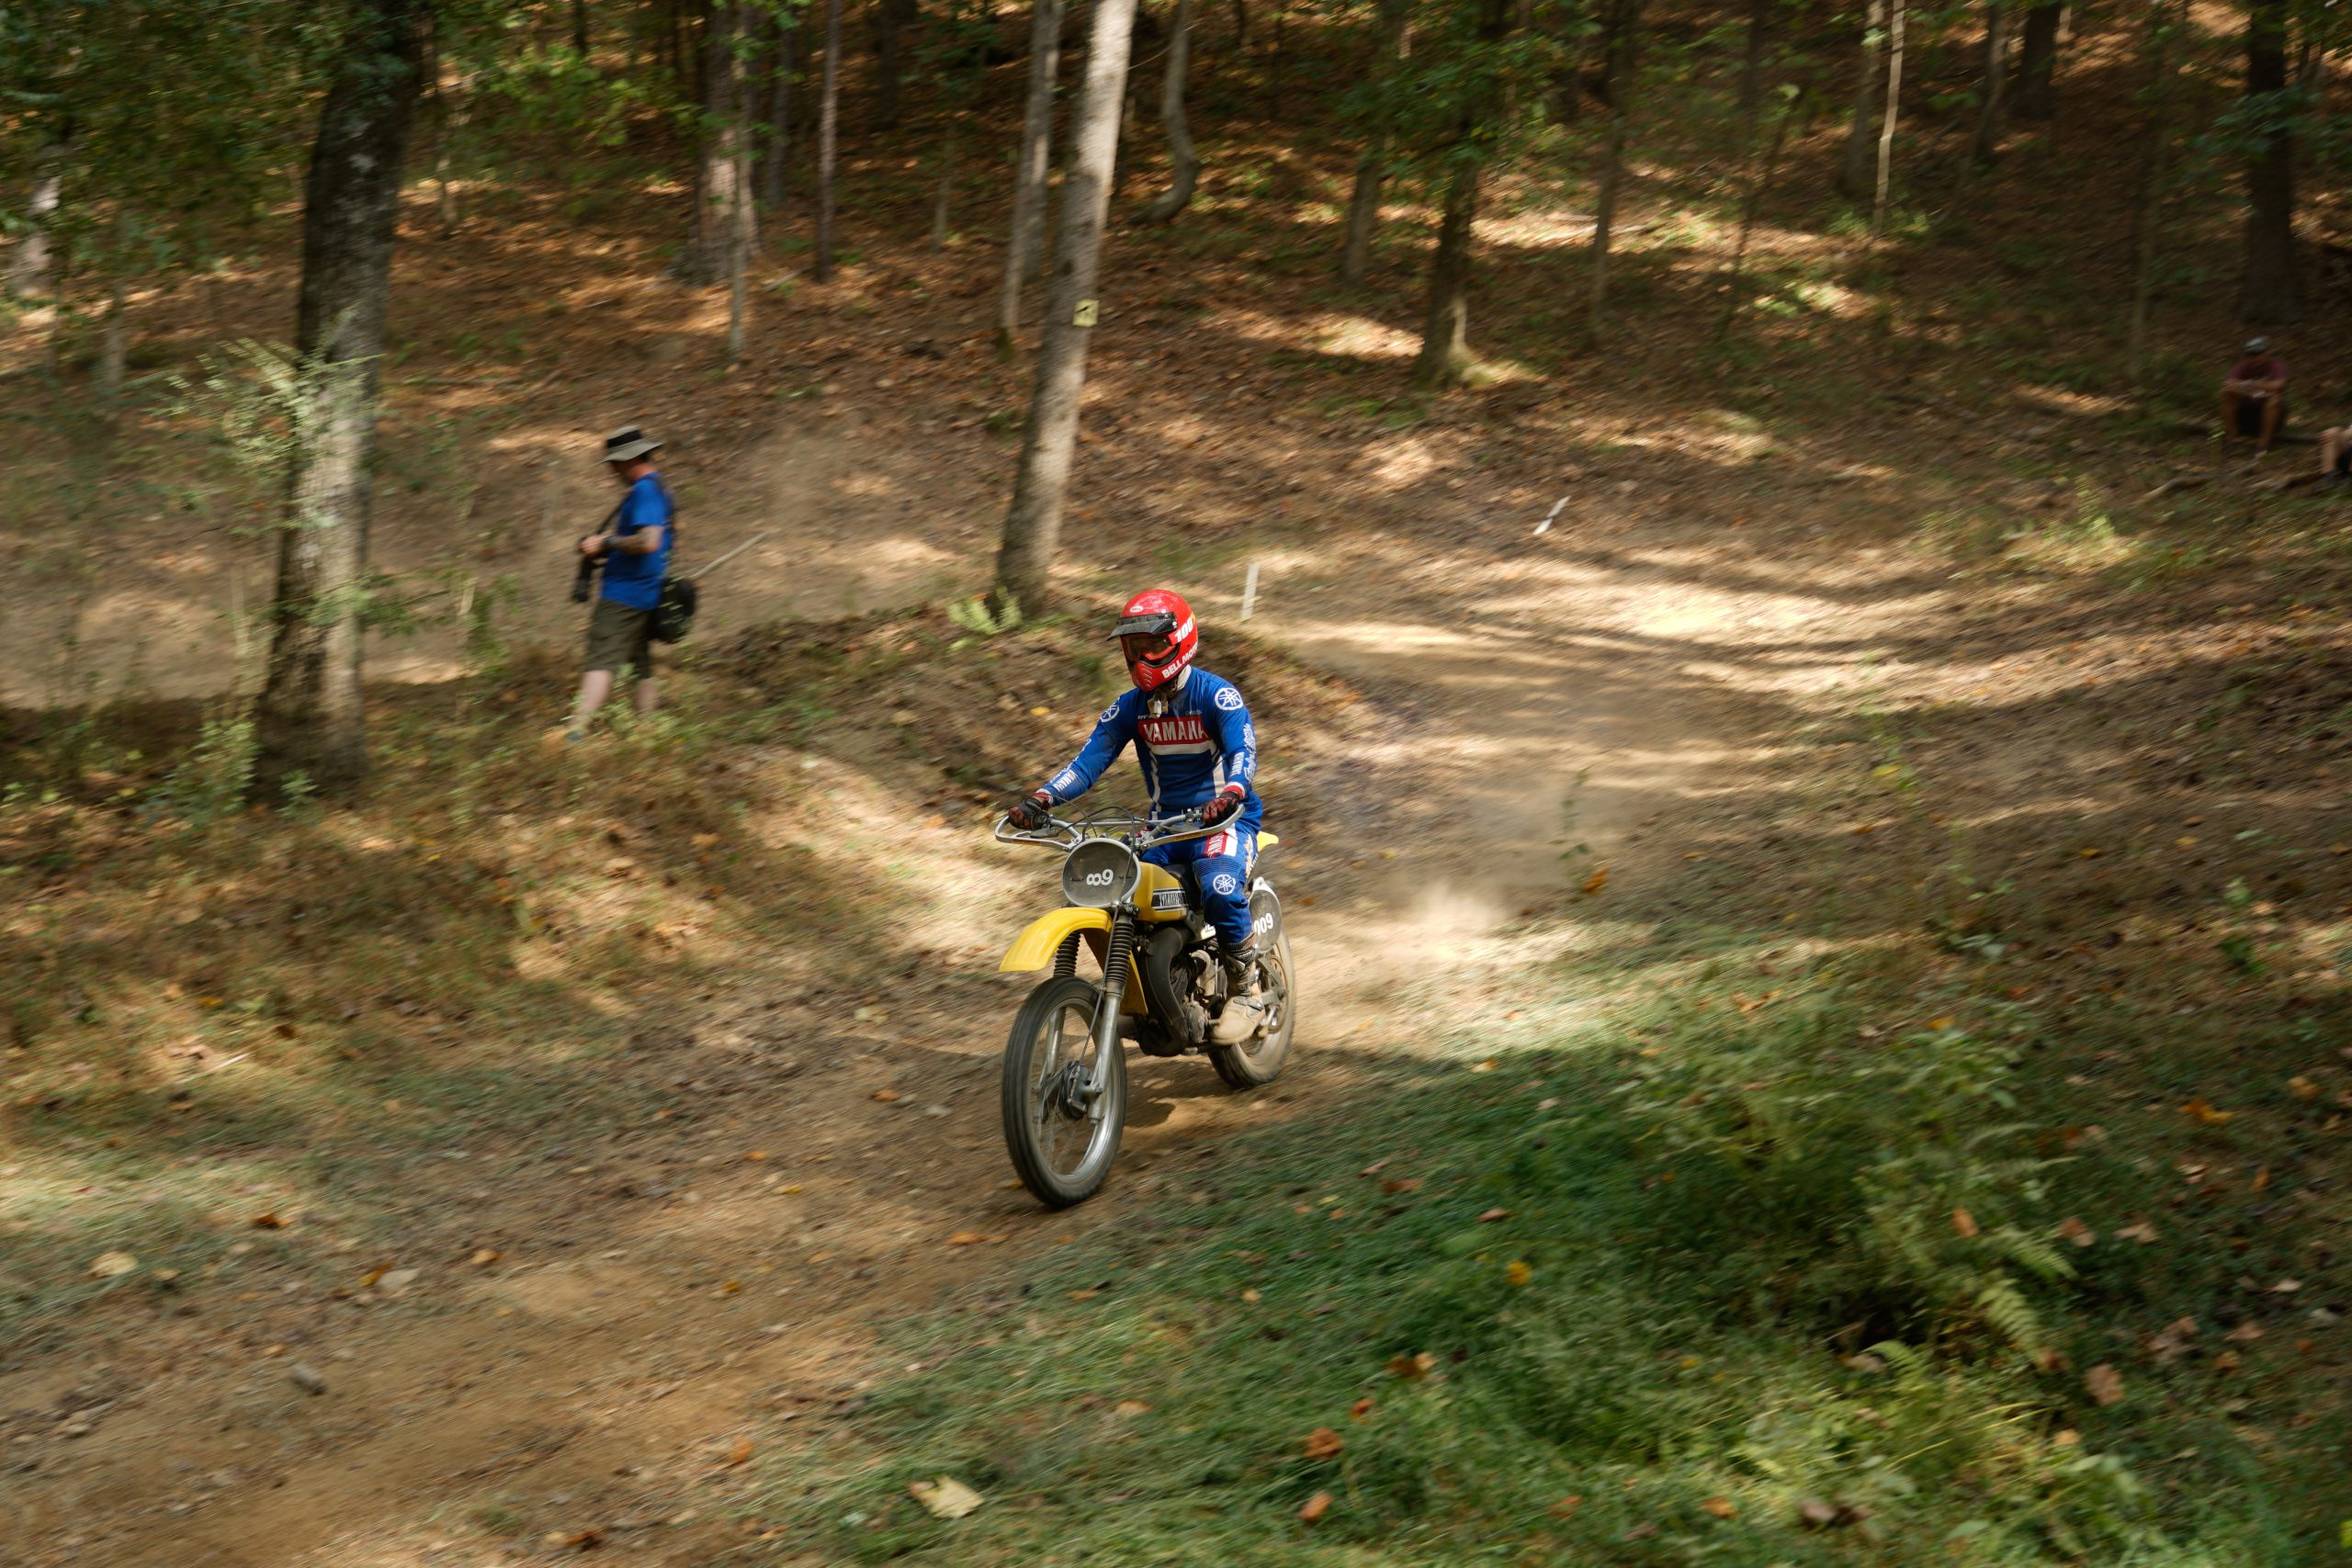 Kyle Smith racing YZ125 at Barber Vintage Festival